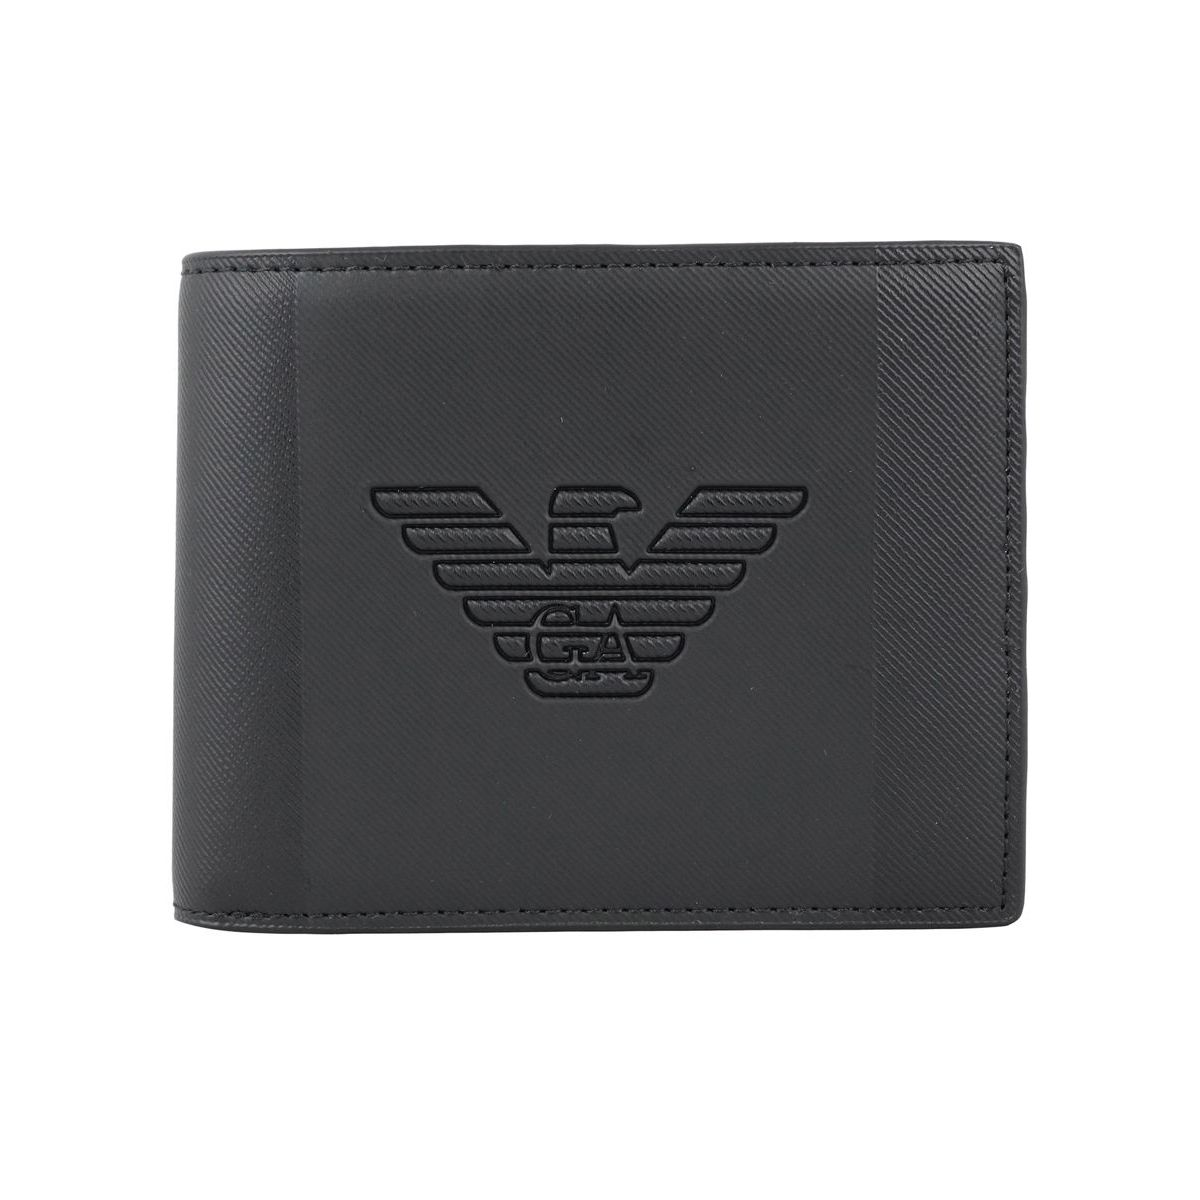 Leather wallet with embossed logo Black Emporio Armani